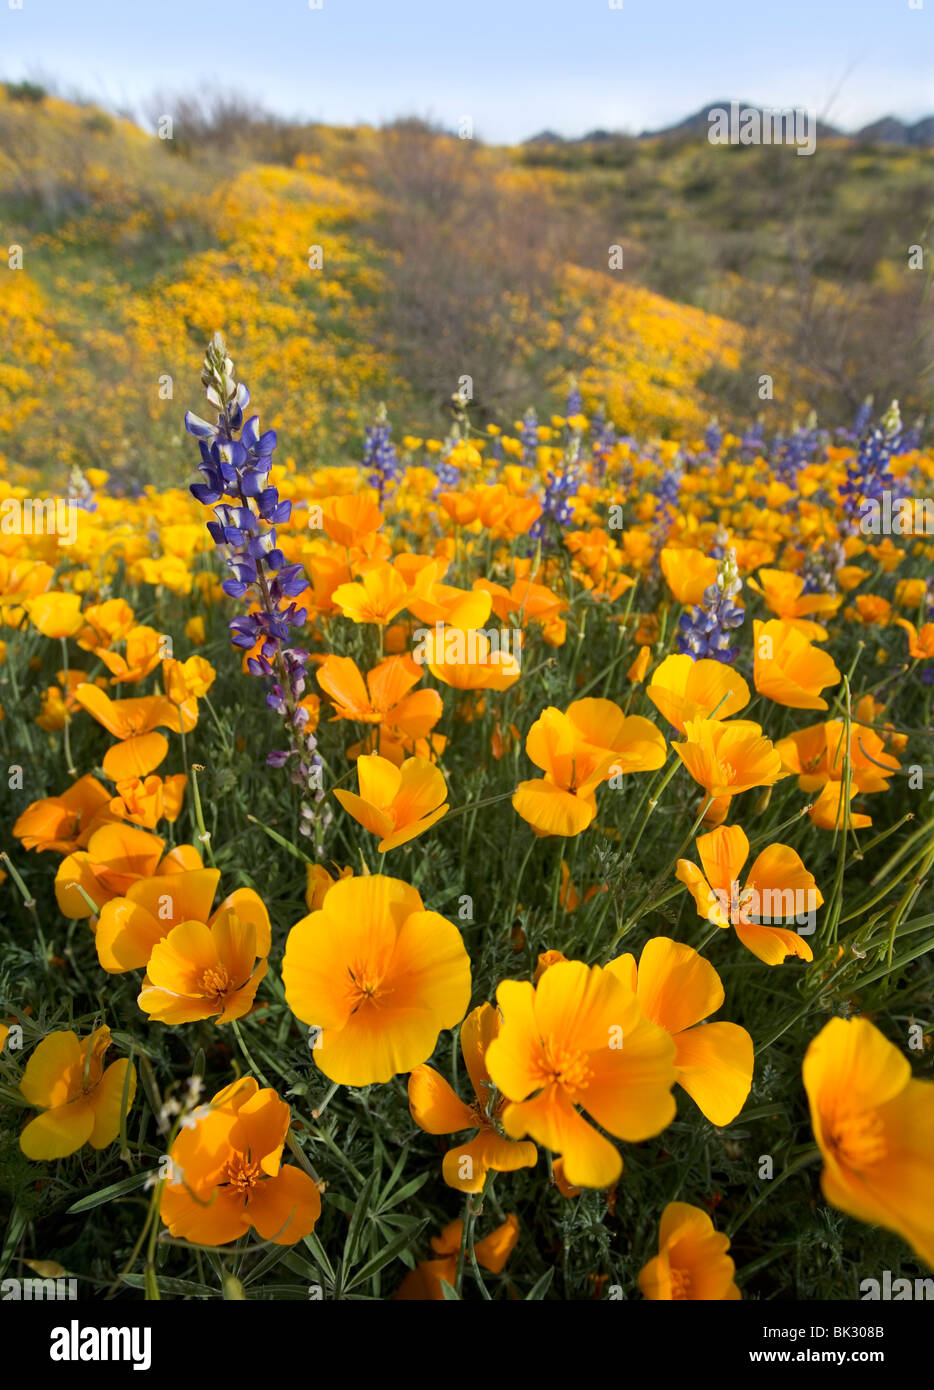 A large field of orange and yellow poppies, lupines, and wildflowers that goes on forever. - Stock Image